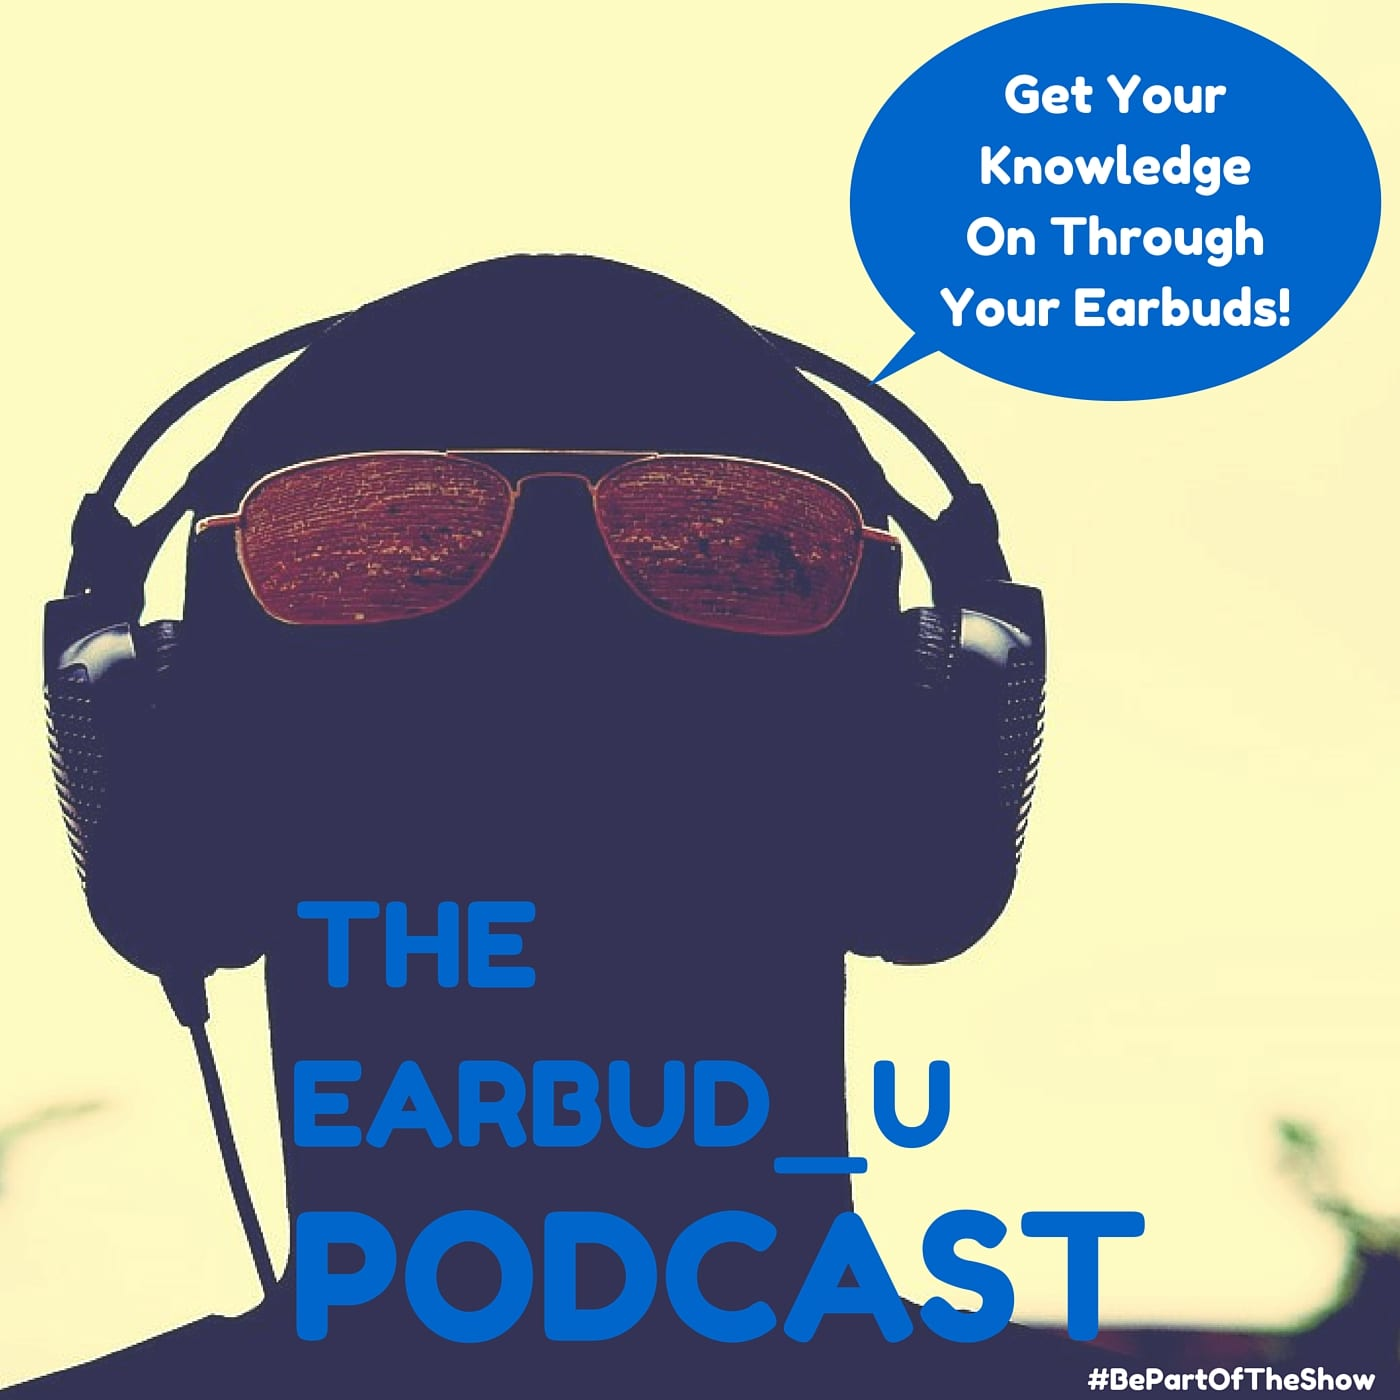 The Earbud_U Podcast